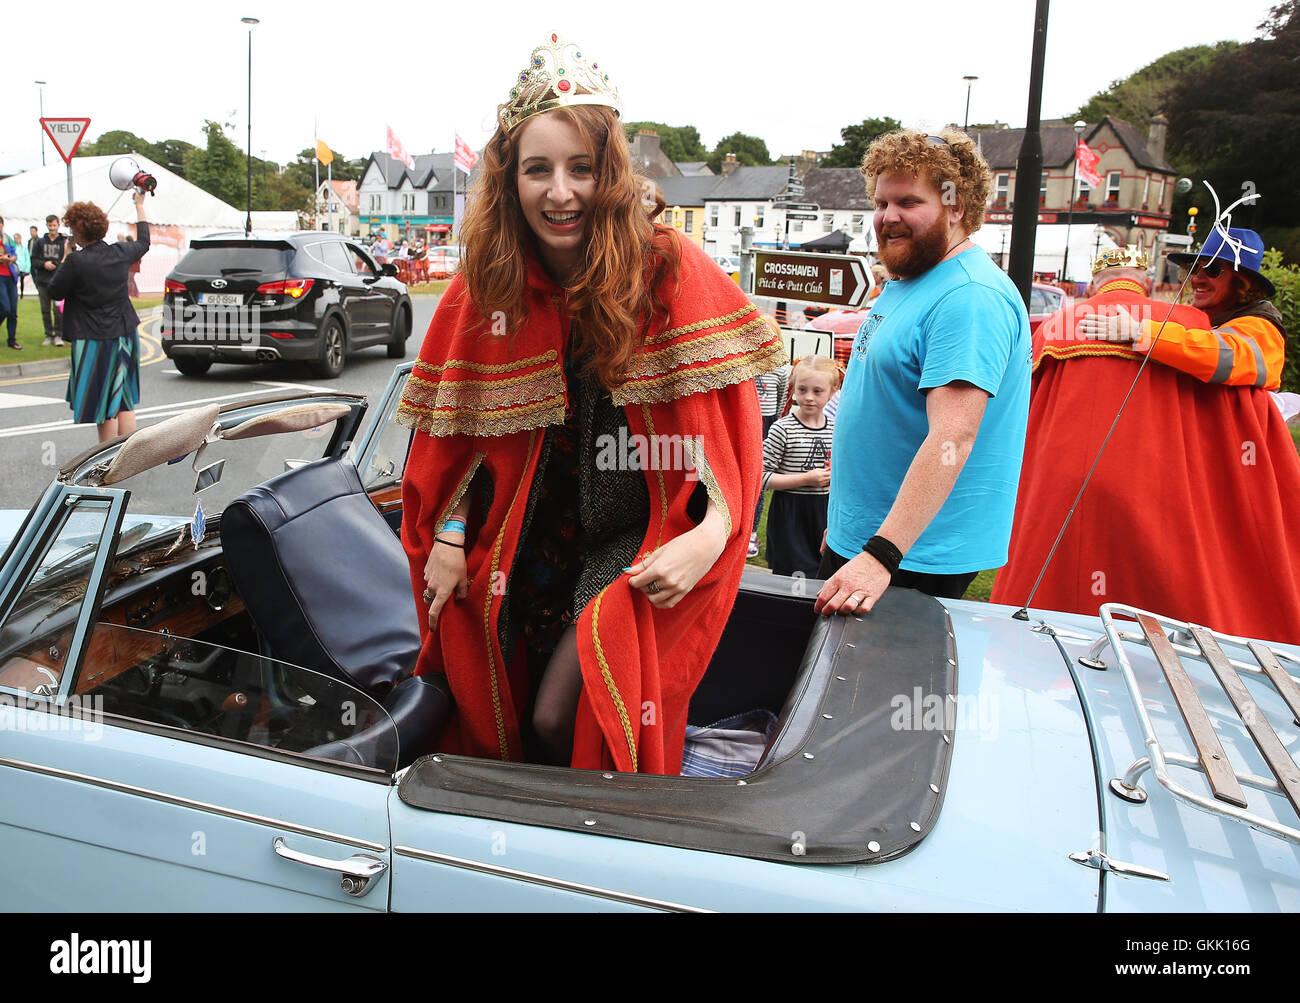 The newly crowned 'Queen of the Redheads' Emma Ni Chearuil at the Irish Redhead Convention held in the village of Stock Photo